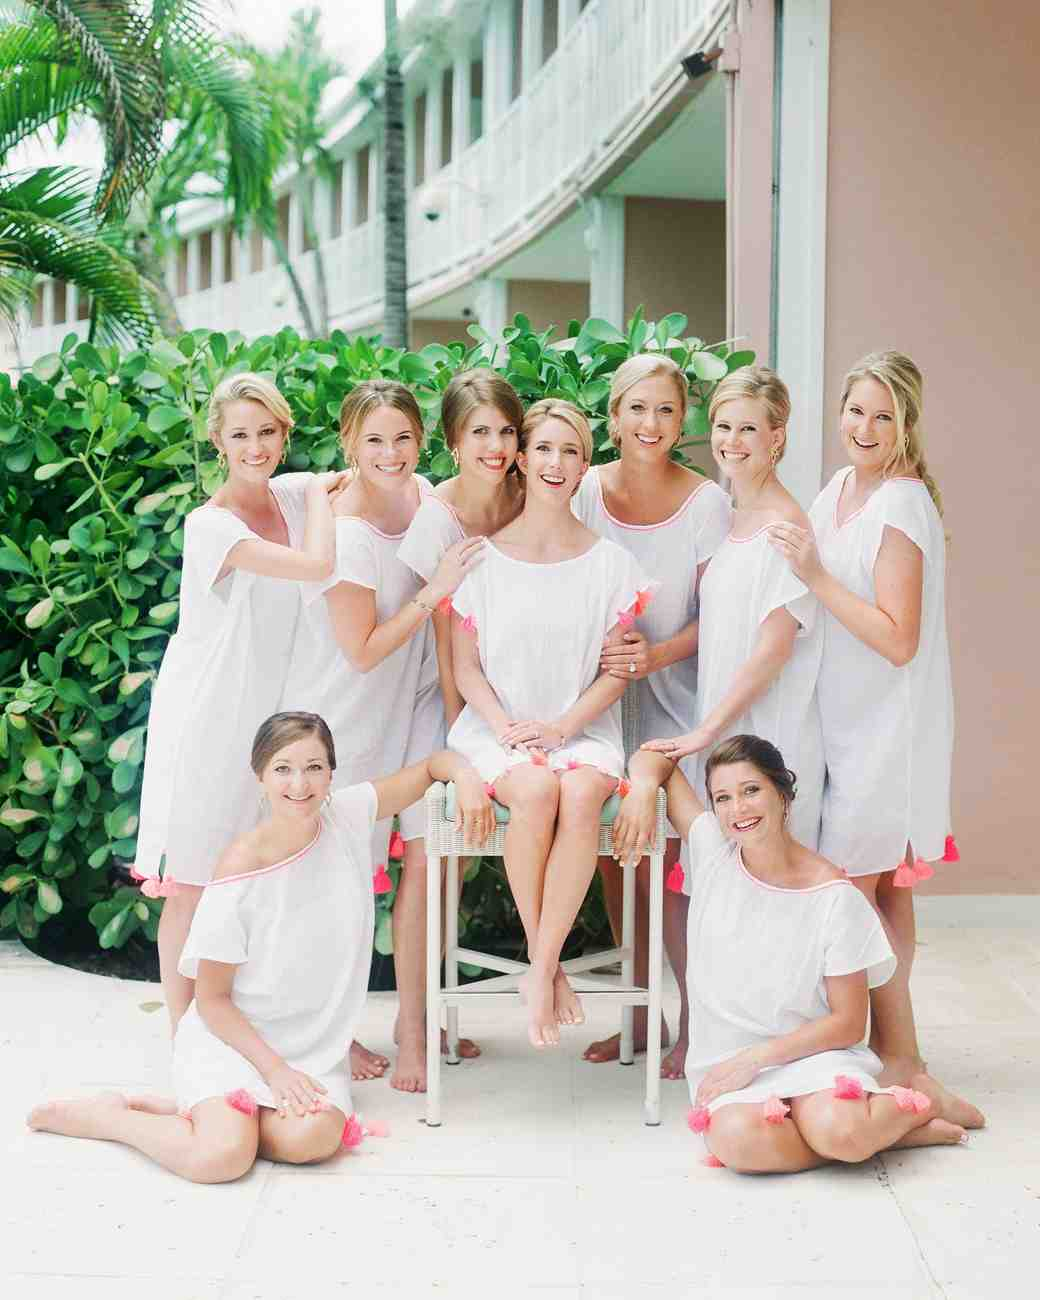 23 DIY Bridesmaids' Gifts to Craft for Your Crew | Martha Stewart ...